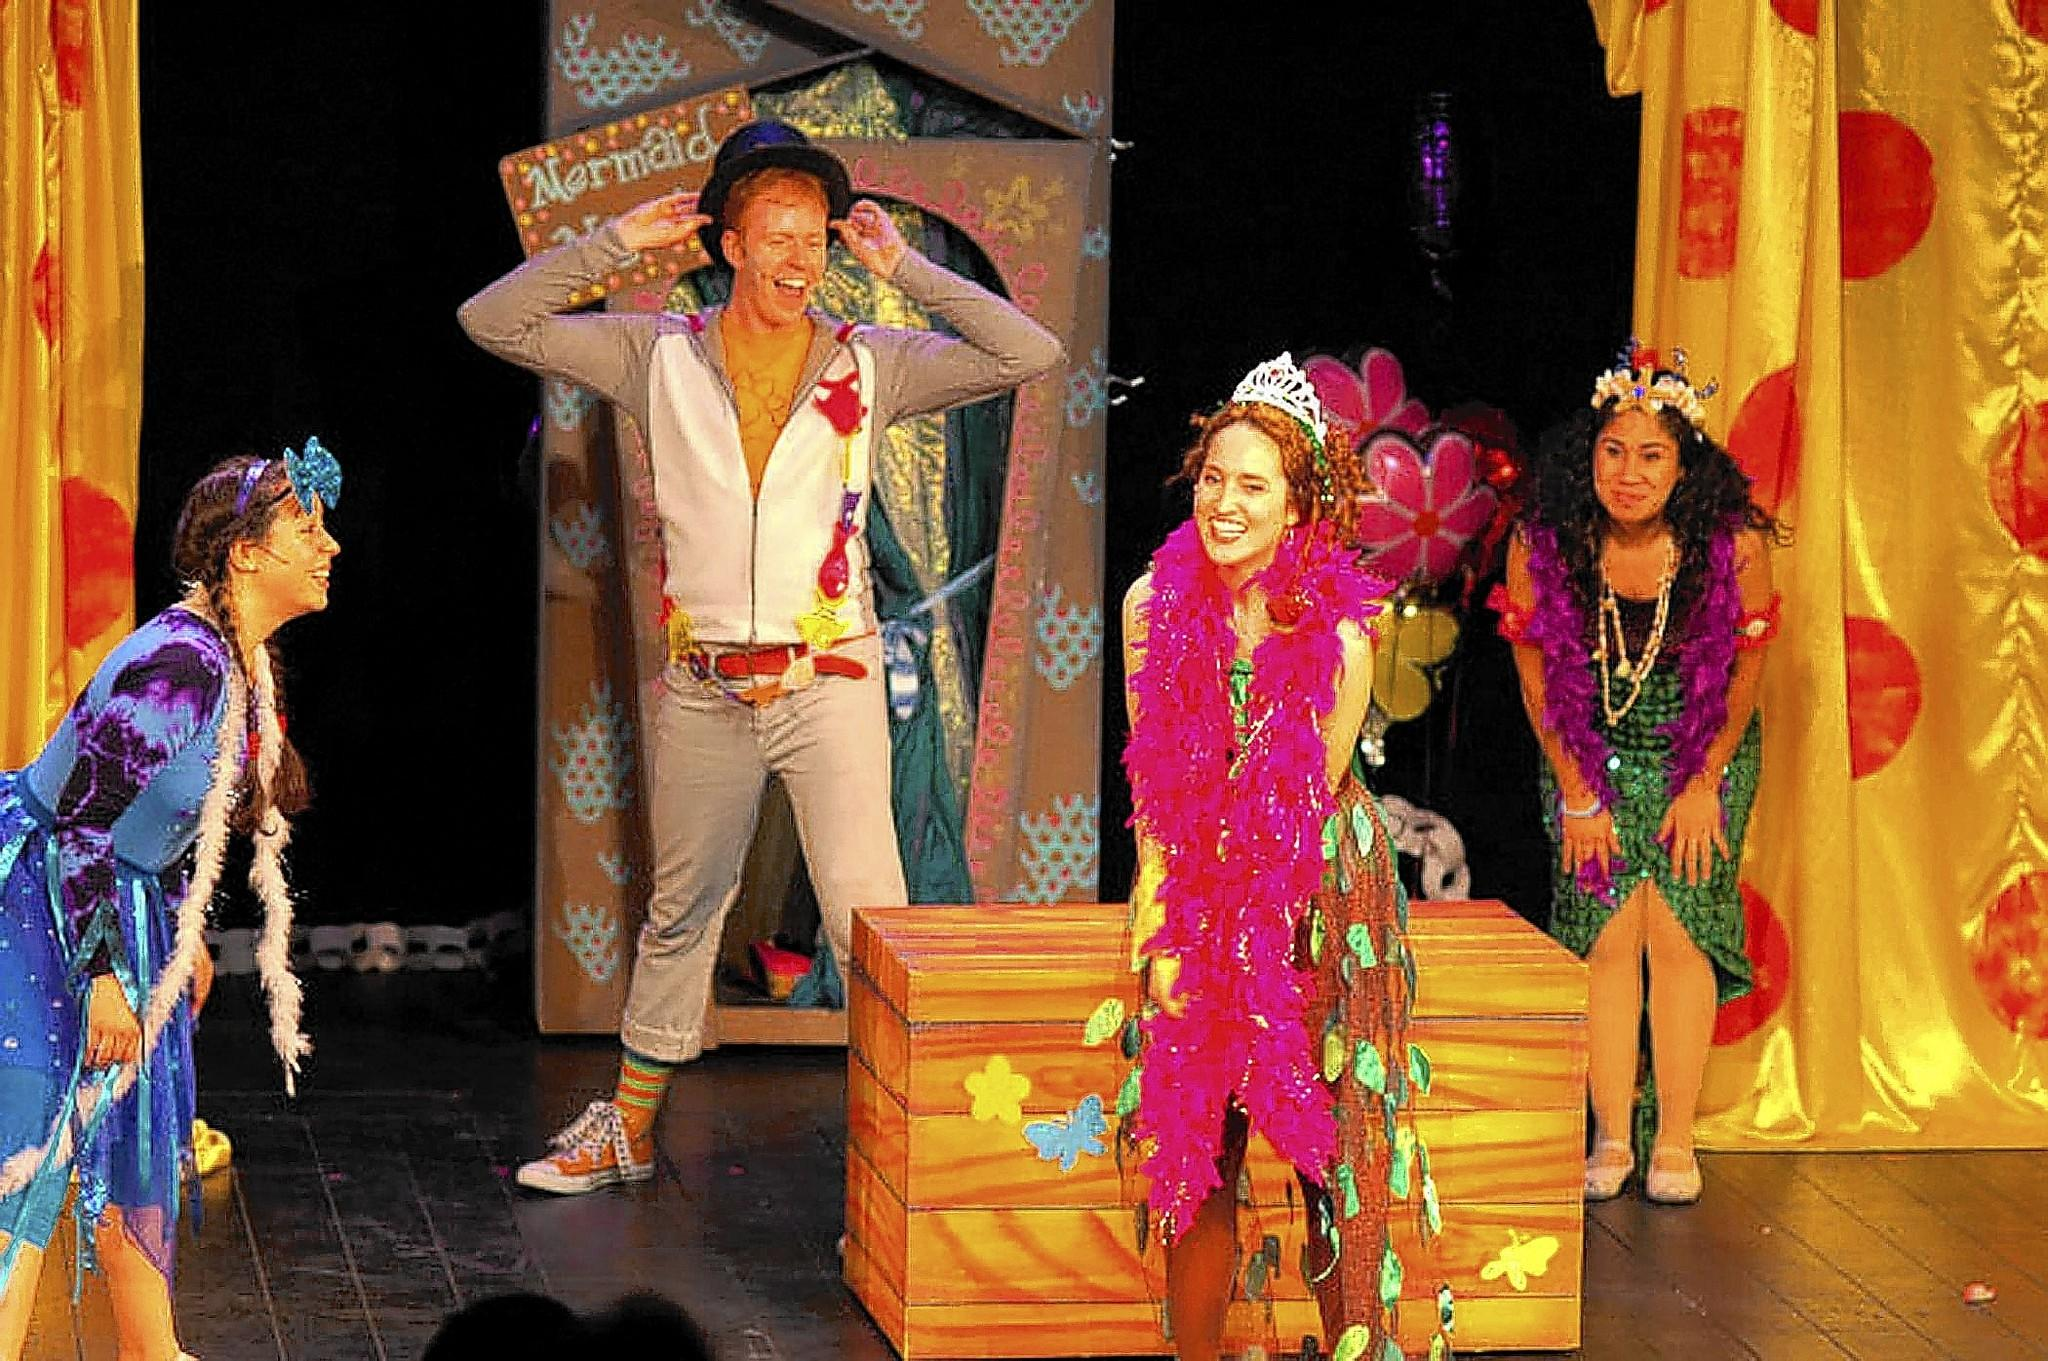 Jes Dugger (from left), Kyle Motsinger, Carly Augenstein and Alex Akin in a scene from 'Fancy Nancy: The Musical,' which comes to Allentown's Symphony Hall on Saturday.